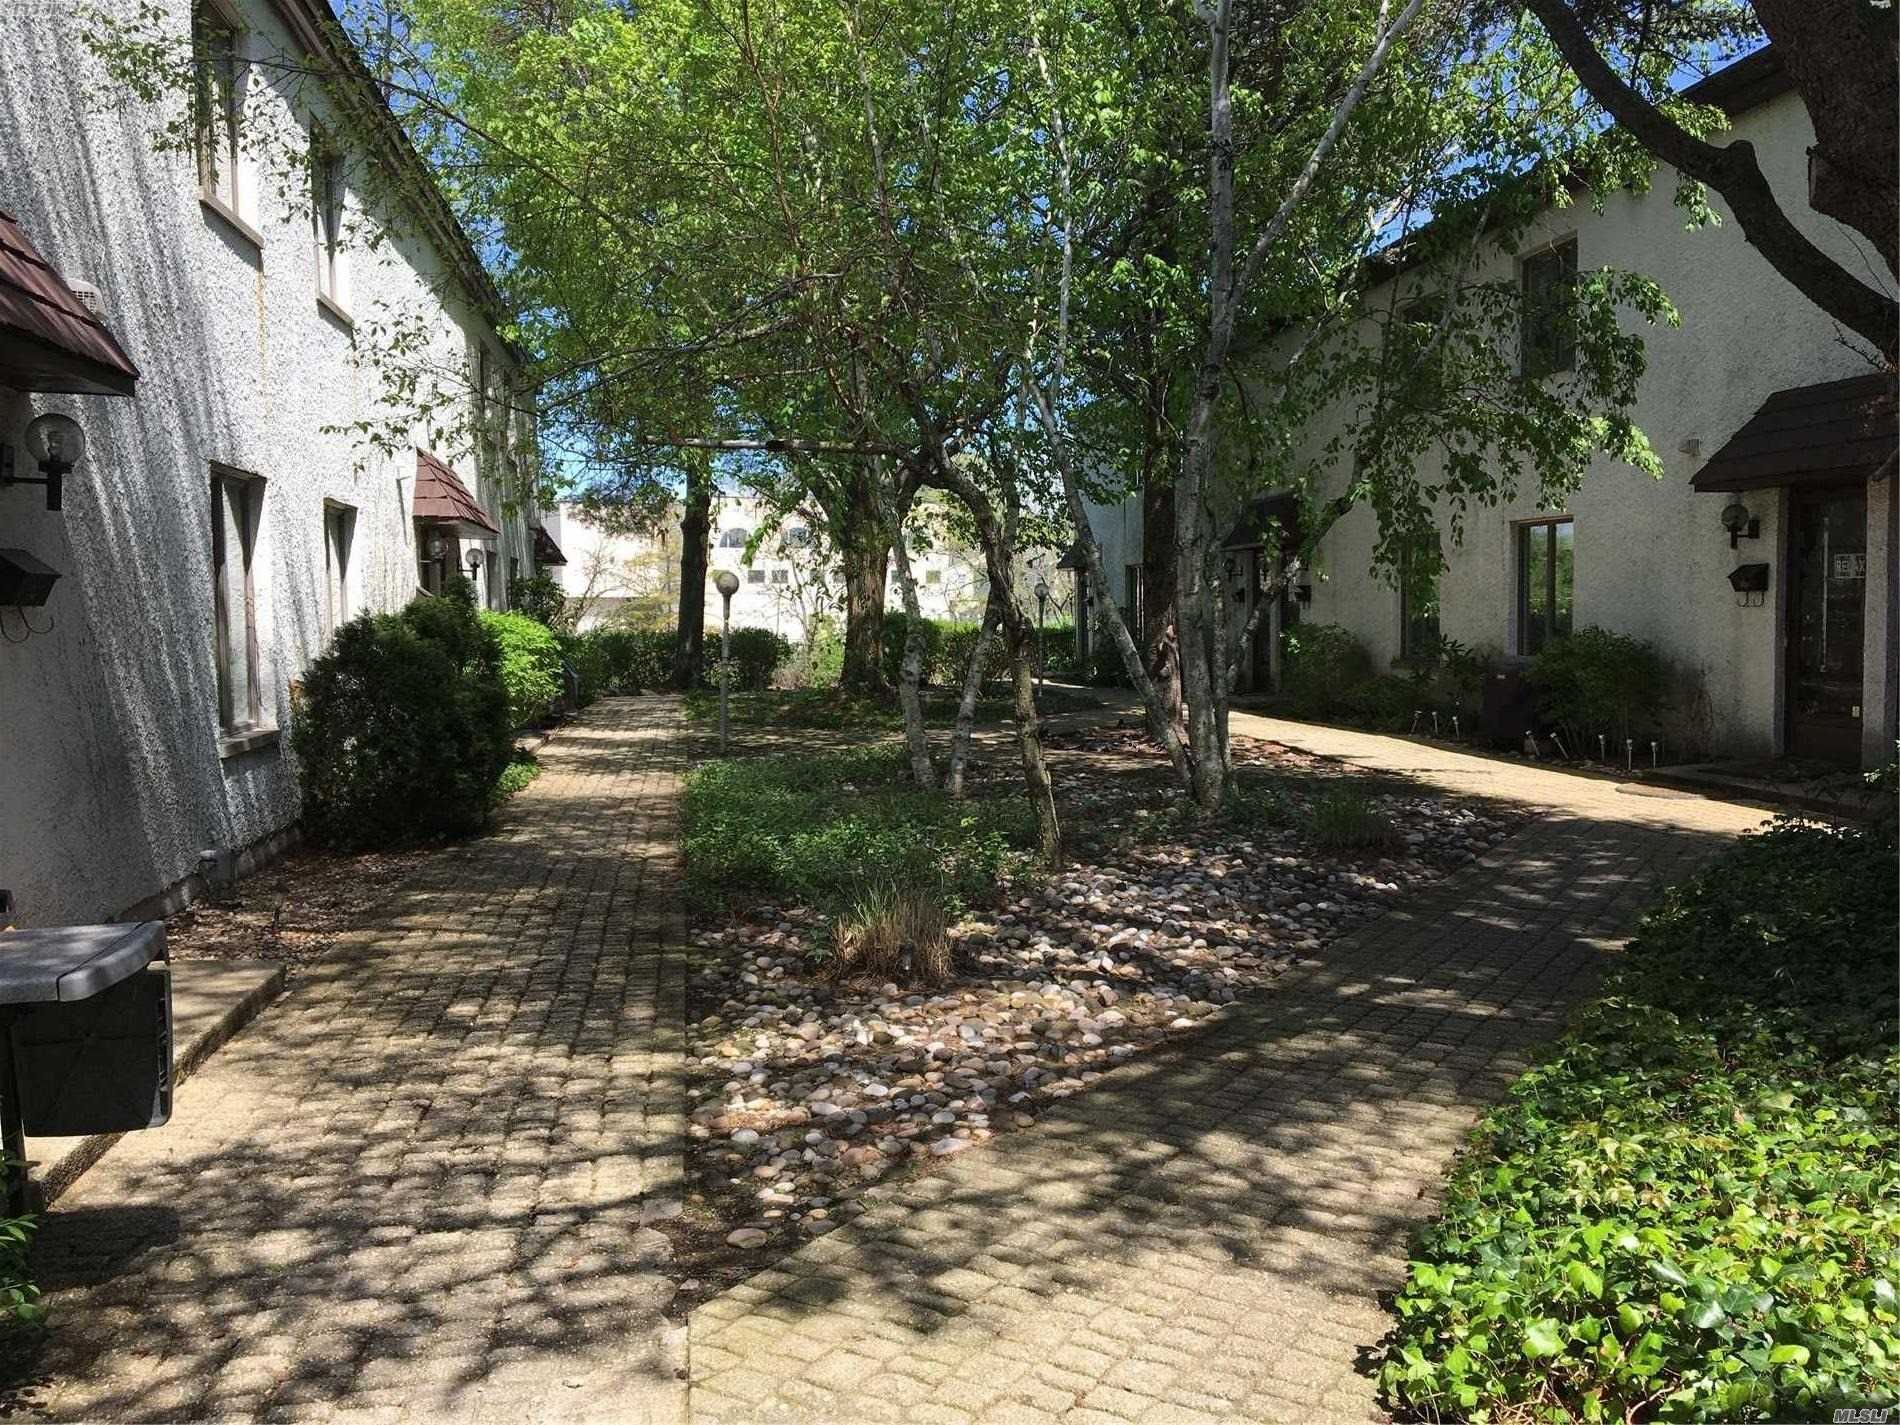 Lovely Courtyard Apartment. Laundry Facility on Premises. Garage Available for Additional Monthly Fee. Close to Soundview Shopping Ceter.